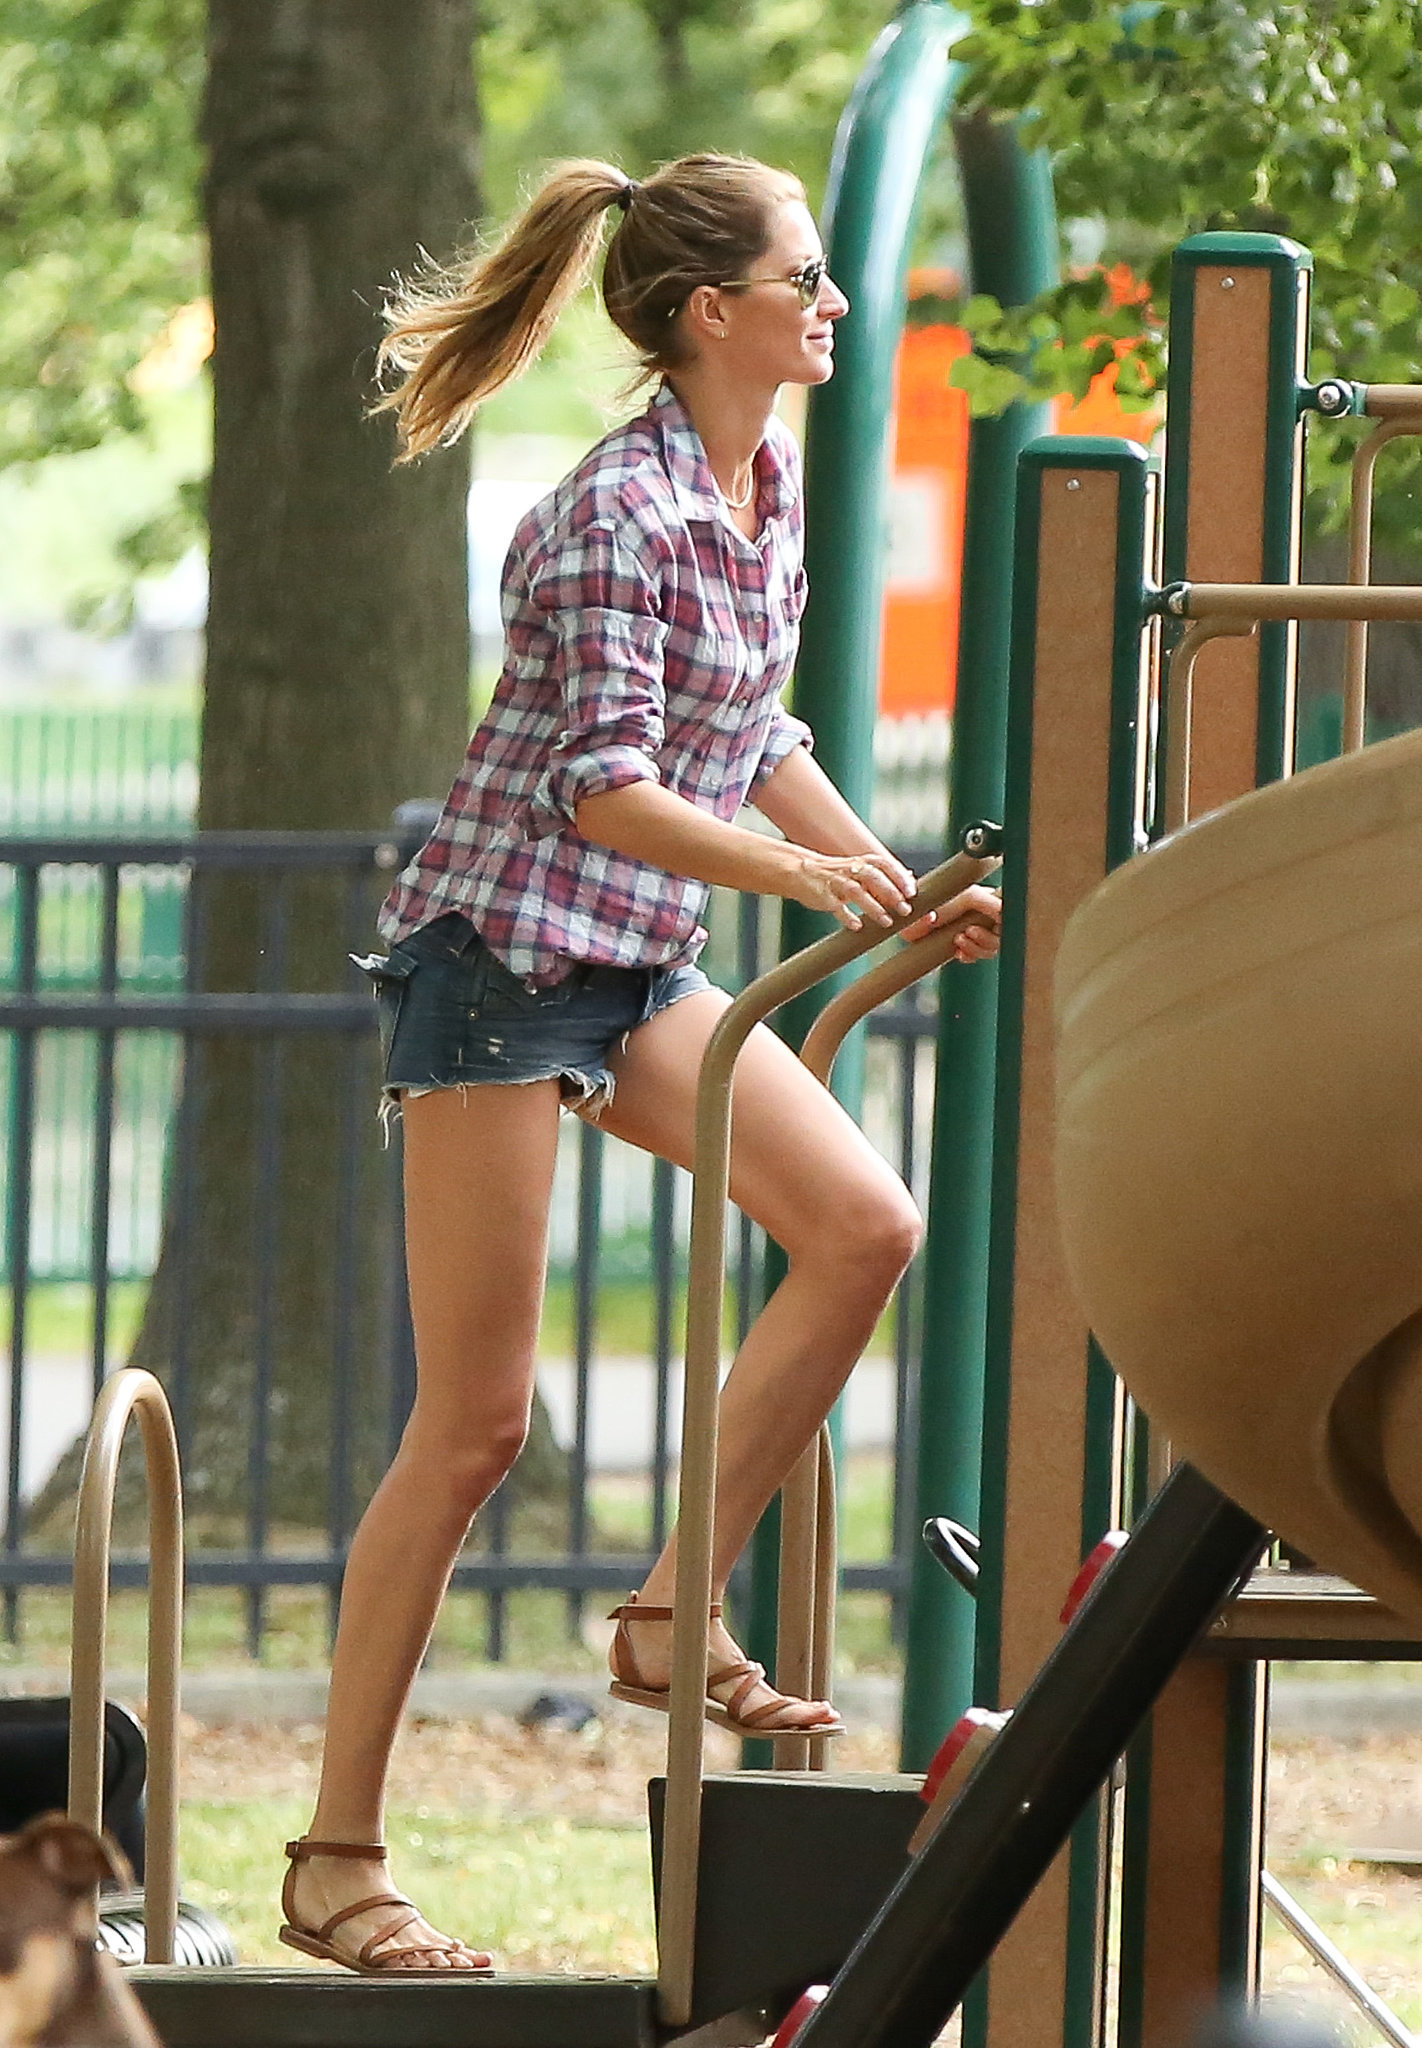 And she owns the playground, too.